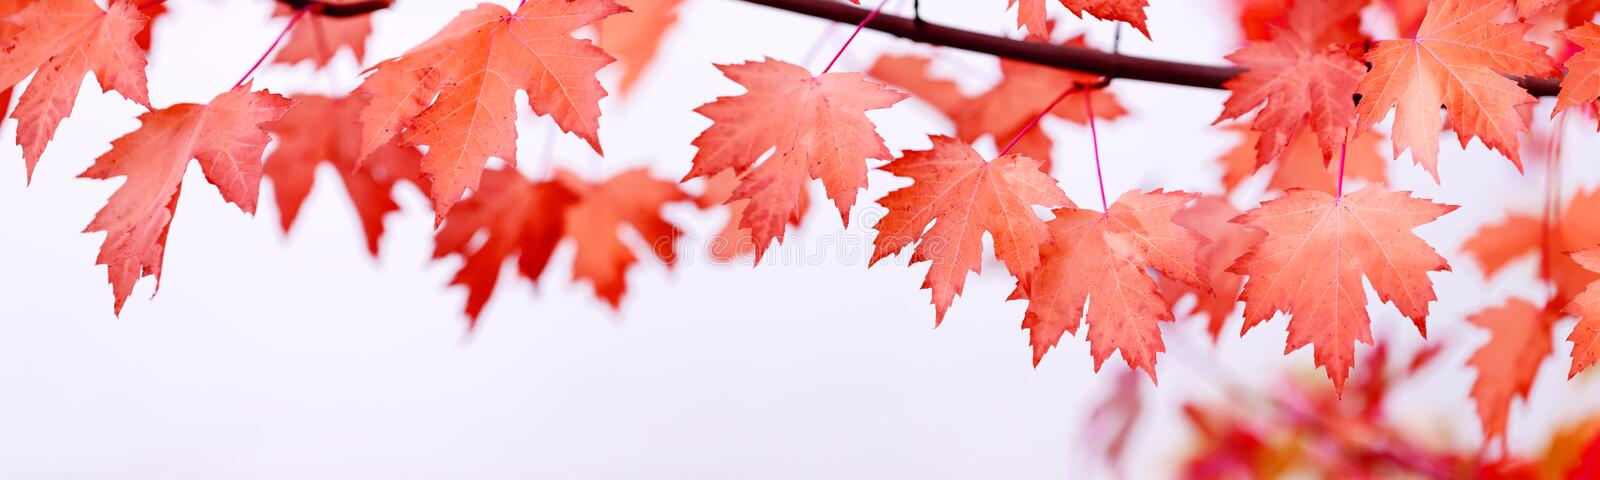 Canada Day maple leaves background. Falling red leaves for Canad royalty free stock photos